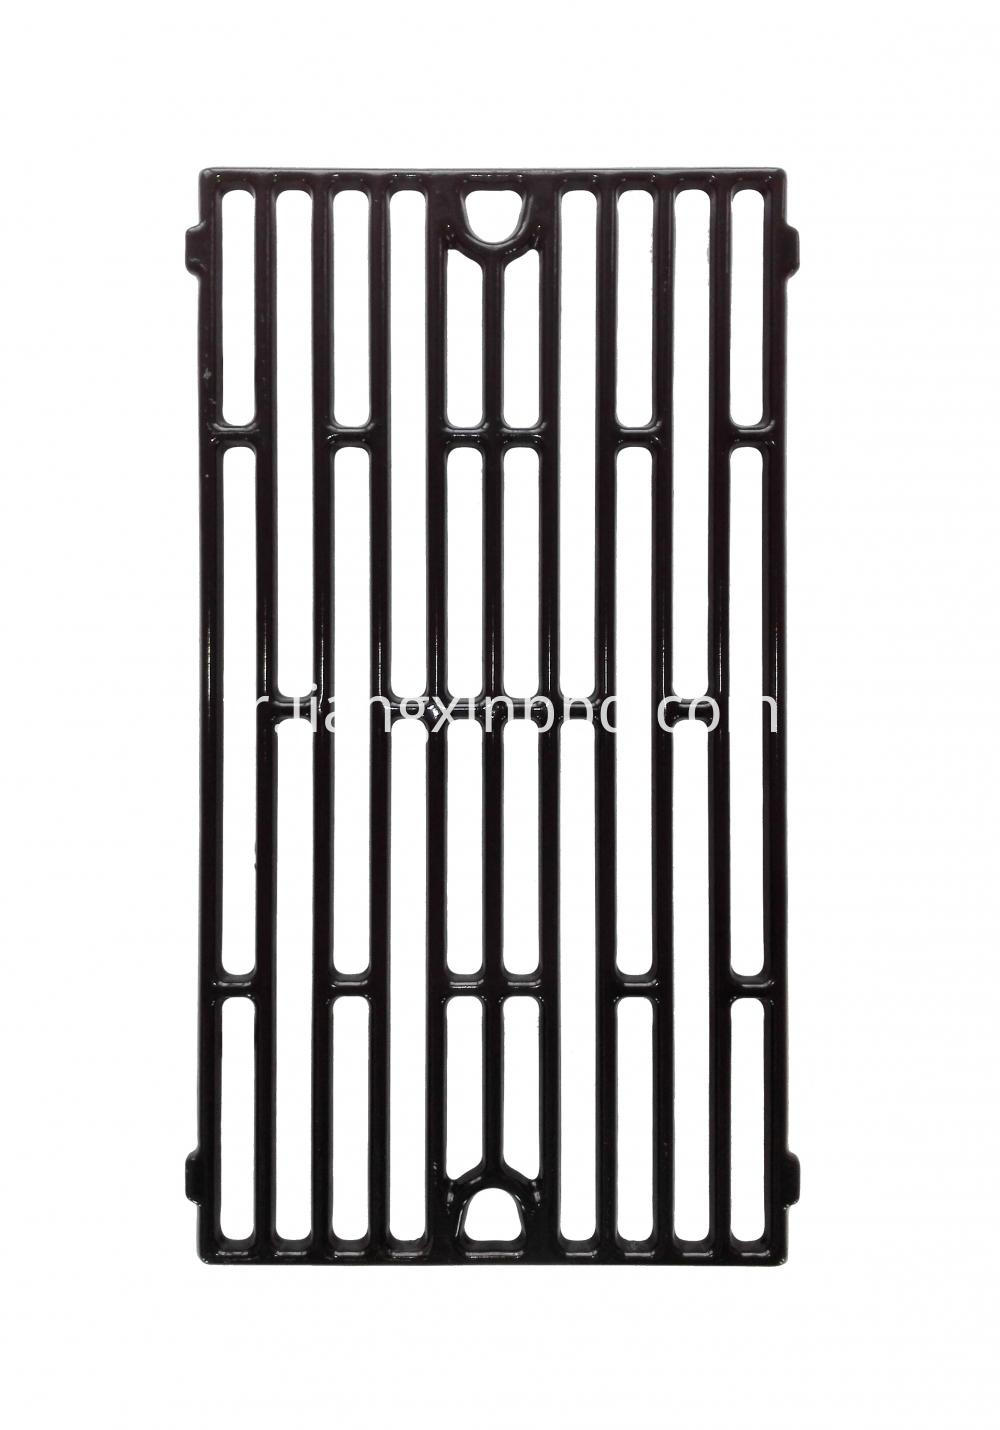 Bbq Cast Iron Cooking Burner Grid